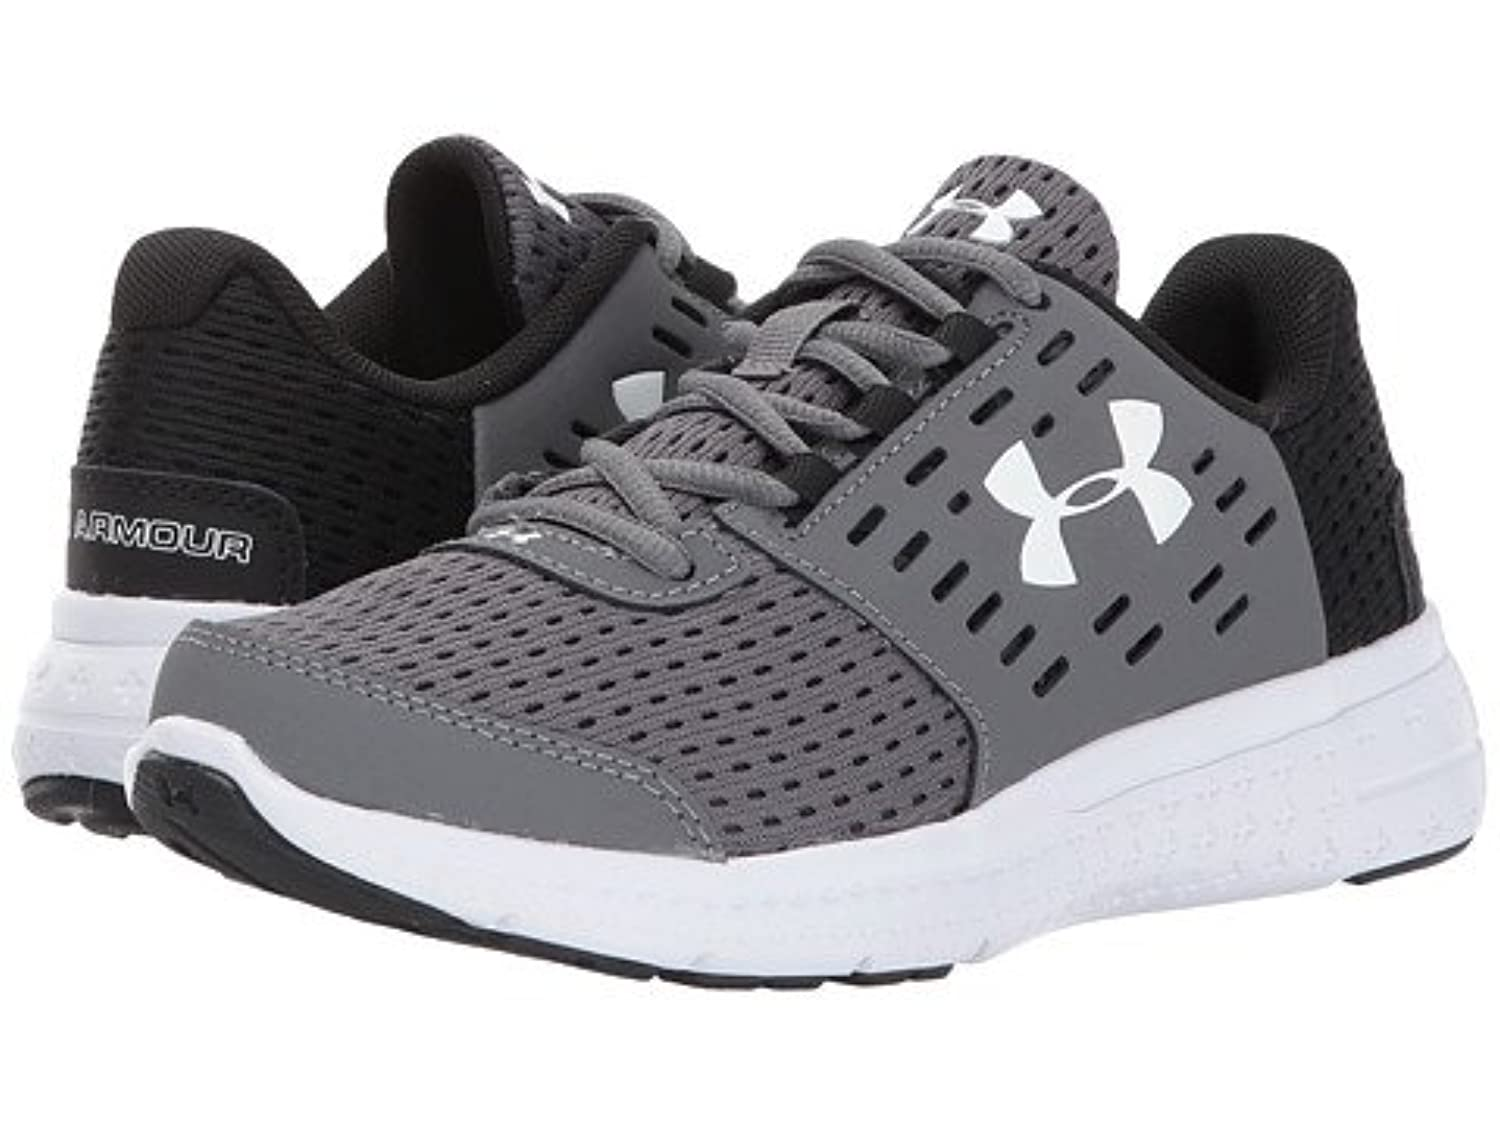 (アンダーアーマー) UNDER ARMOUR キッズランニングシューズ??スニーカー?靴 UA BPS Micro G Motion (Little Kid) Graphite/Black/White 1.5 Little Kid n/a M [並行輸入品]